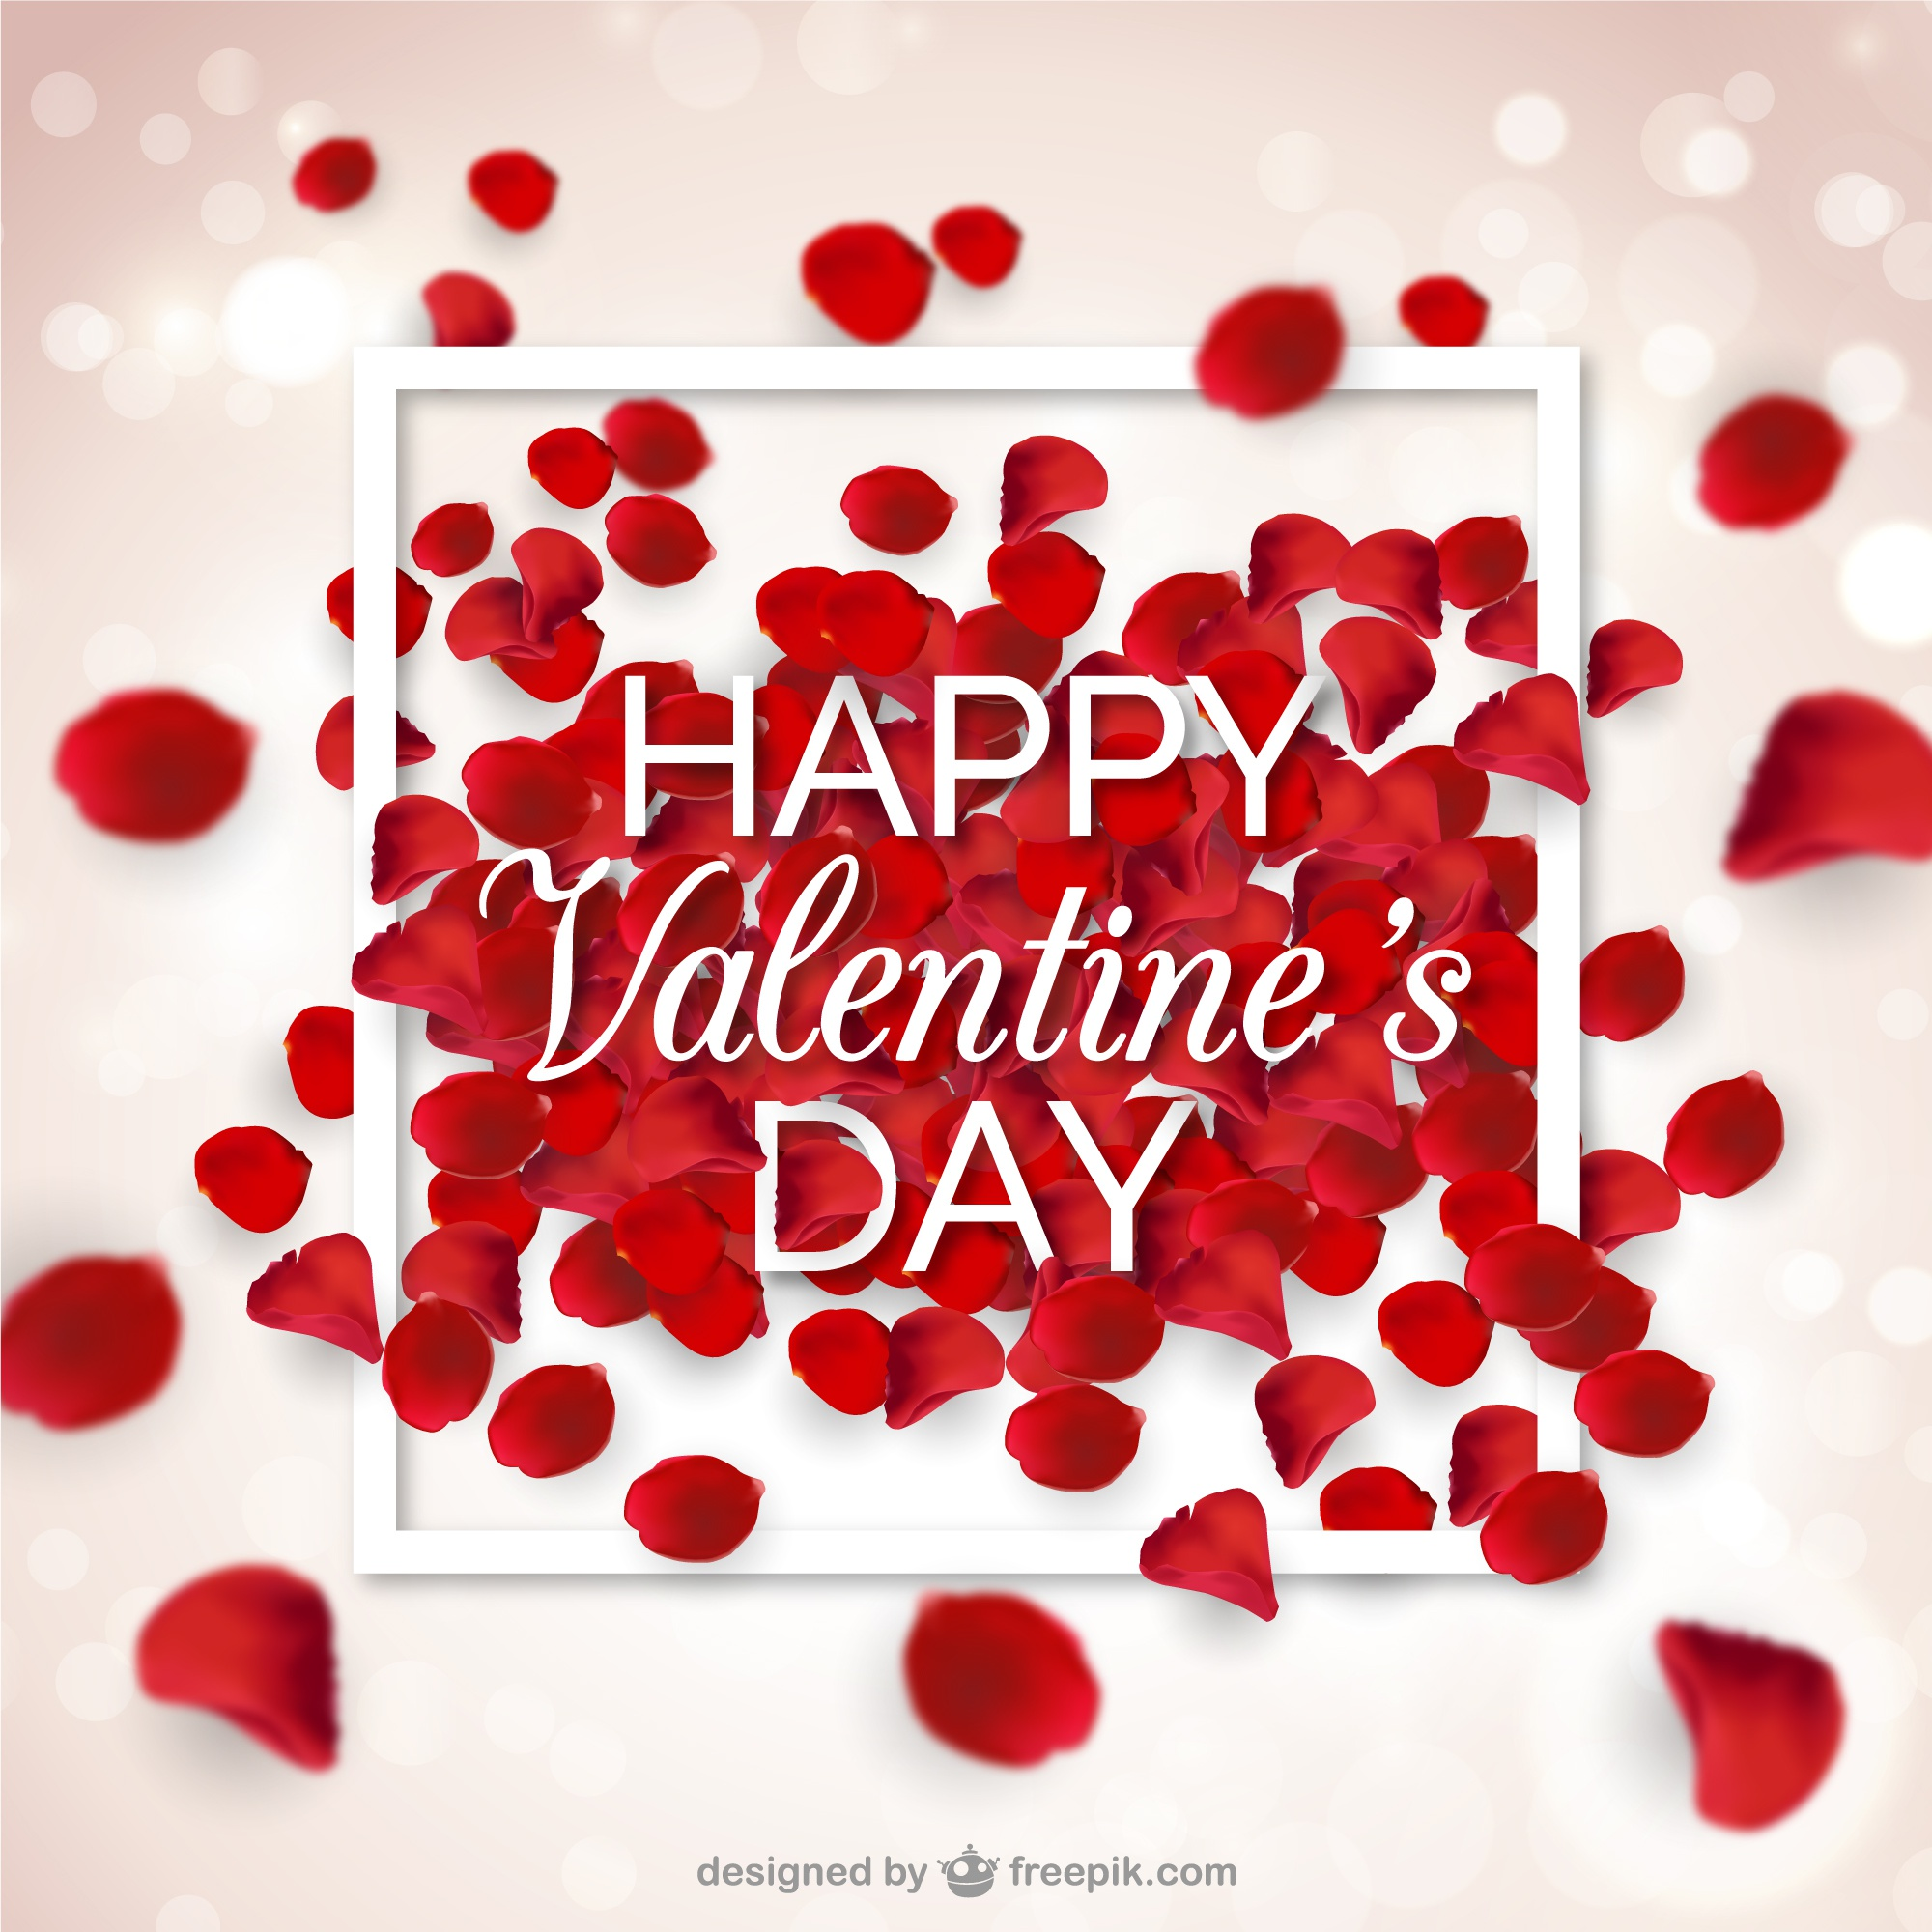 Blurred background with red petals for valentine's day